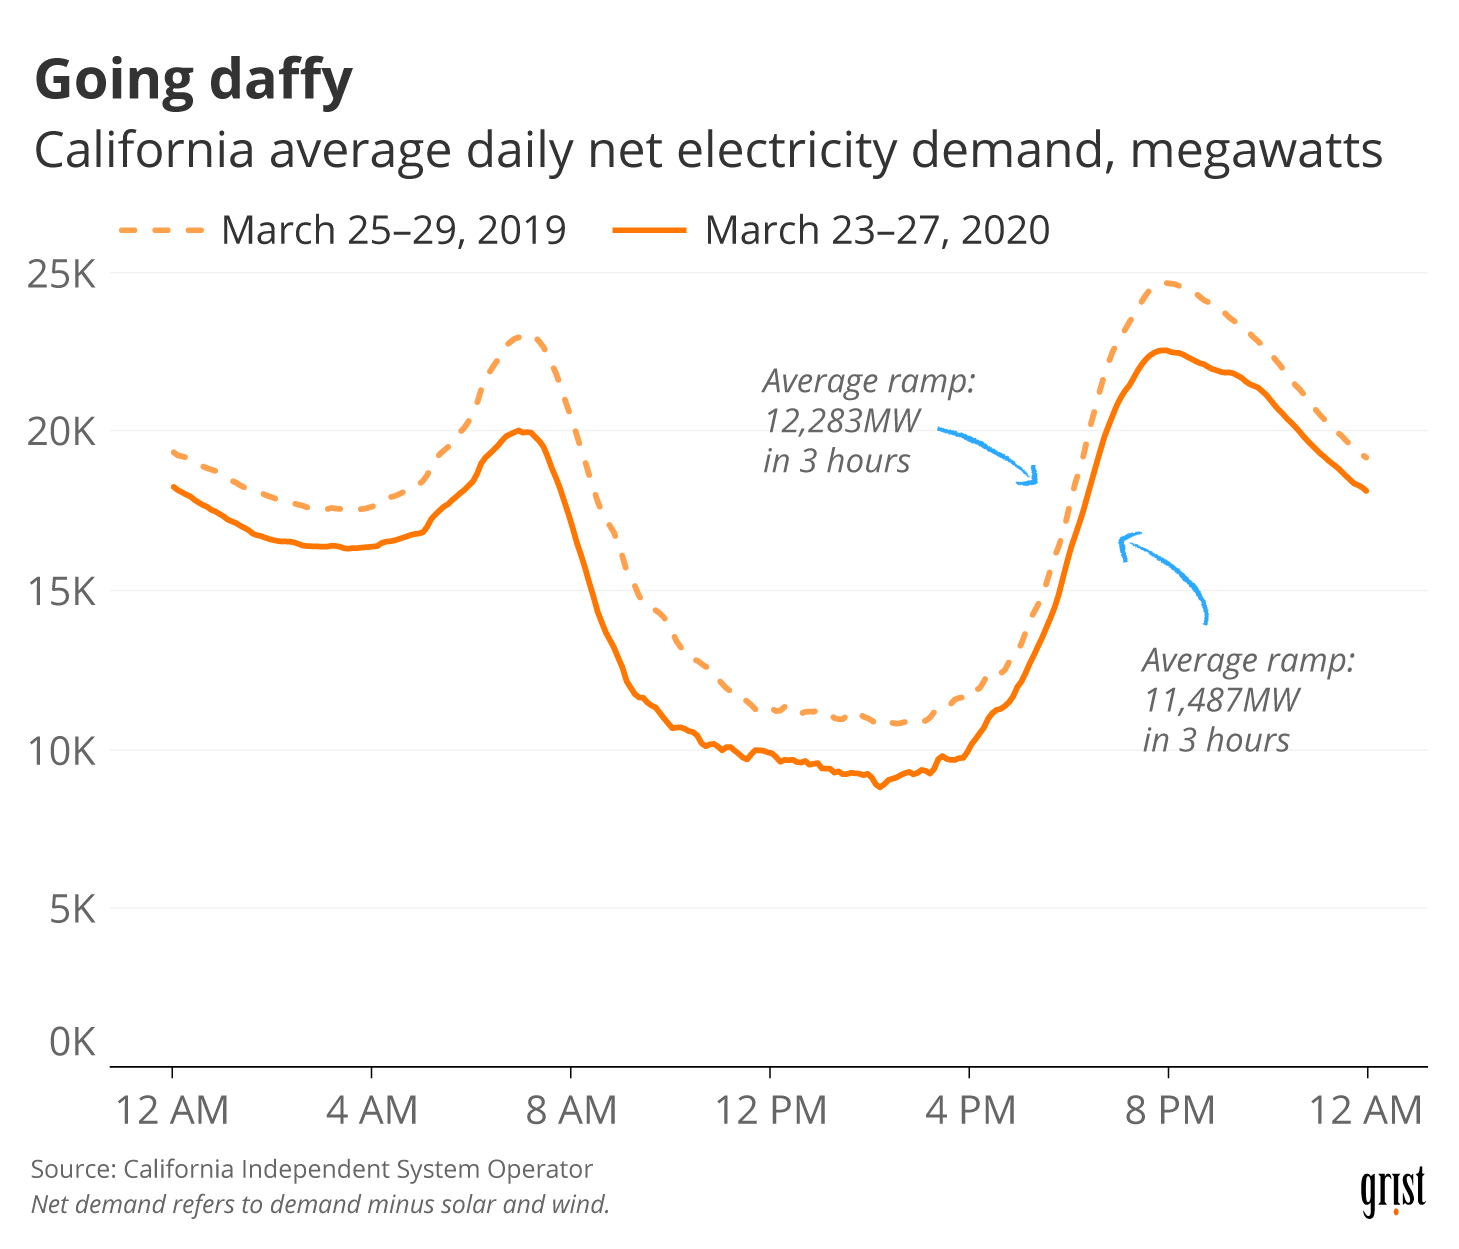 A line chart showing California average daily net electricity demand in late March 2020 versus late March 2019. In 2020, demand was lower, and it ramped to peak more slowly.